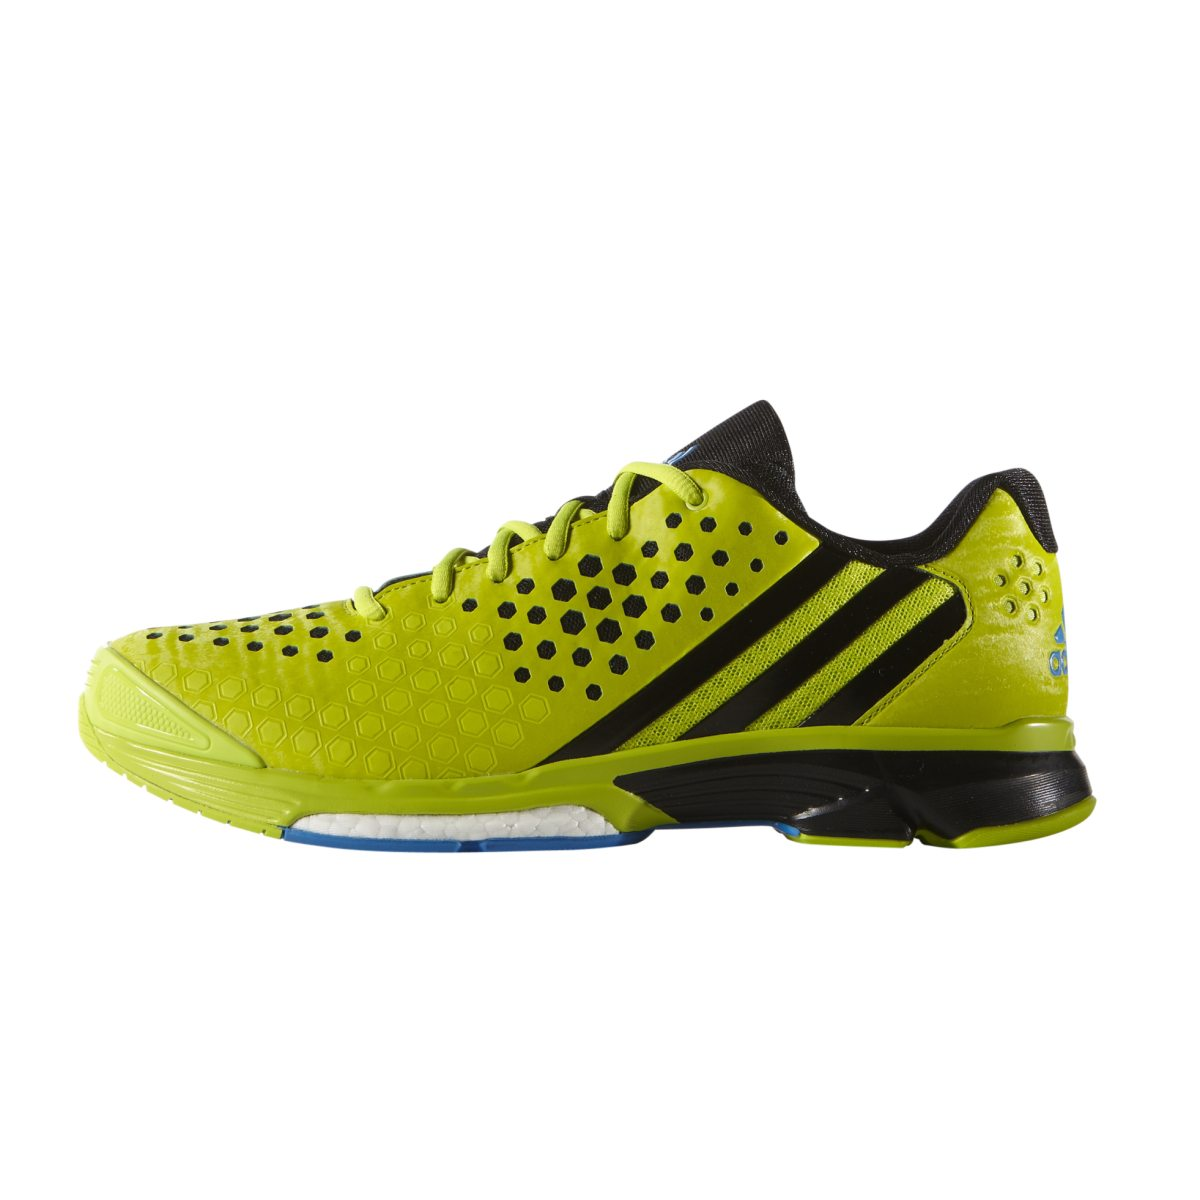 new products 38688 460fc adidas volley response boost inomhussko herr inomhusskor